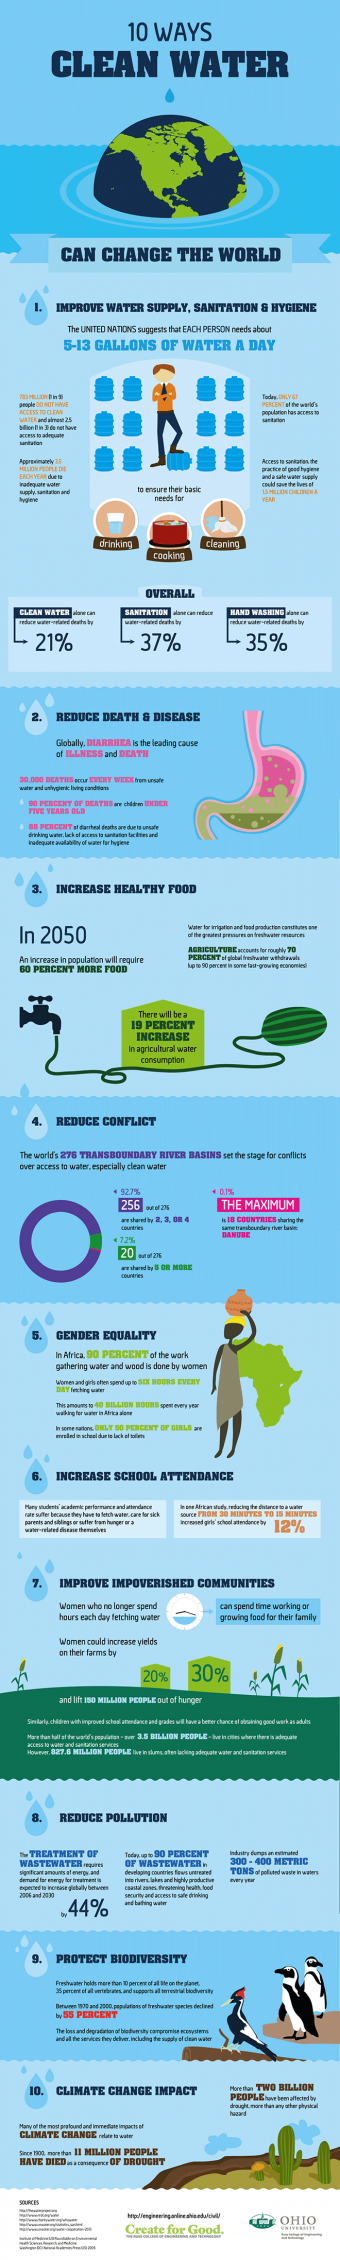 10 ways water can improve the world